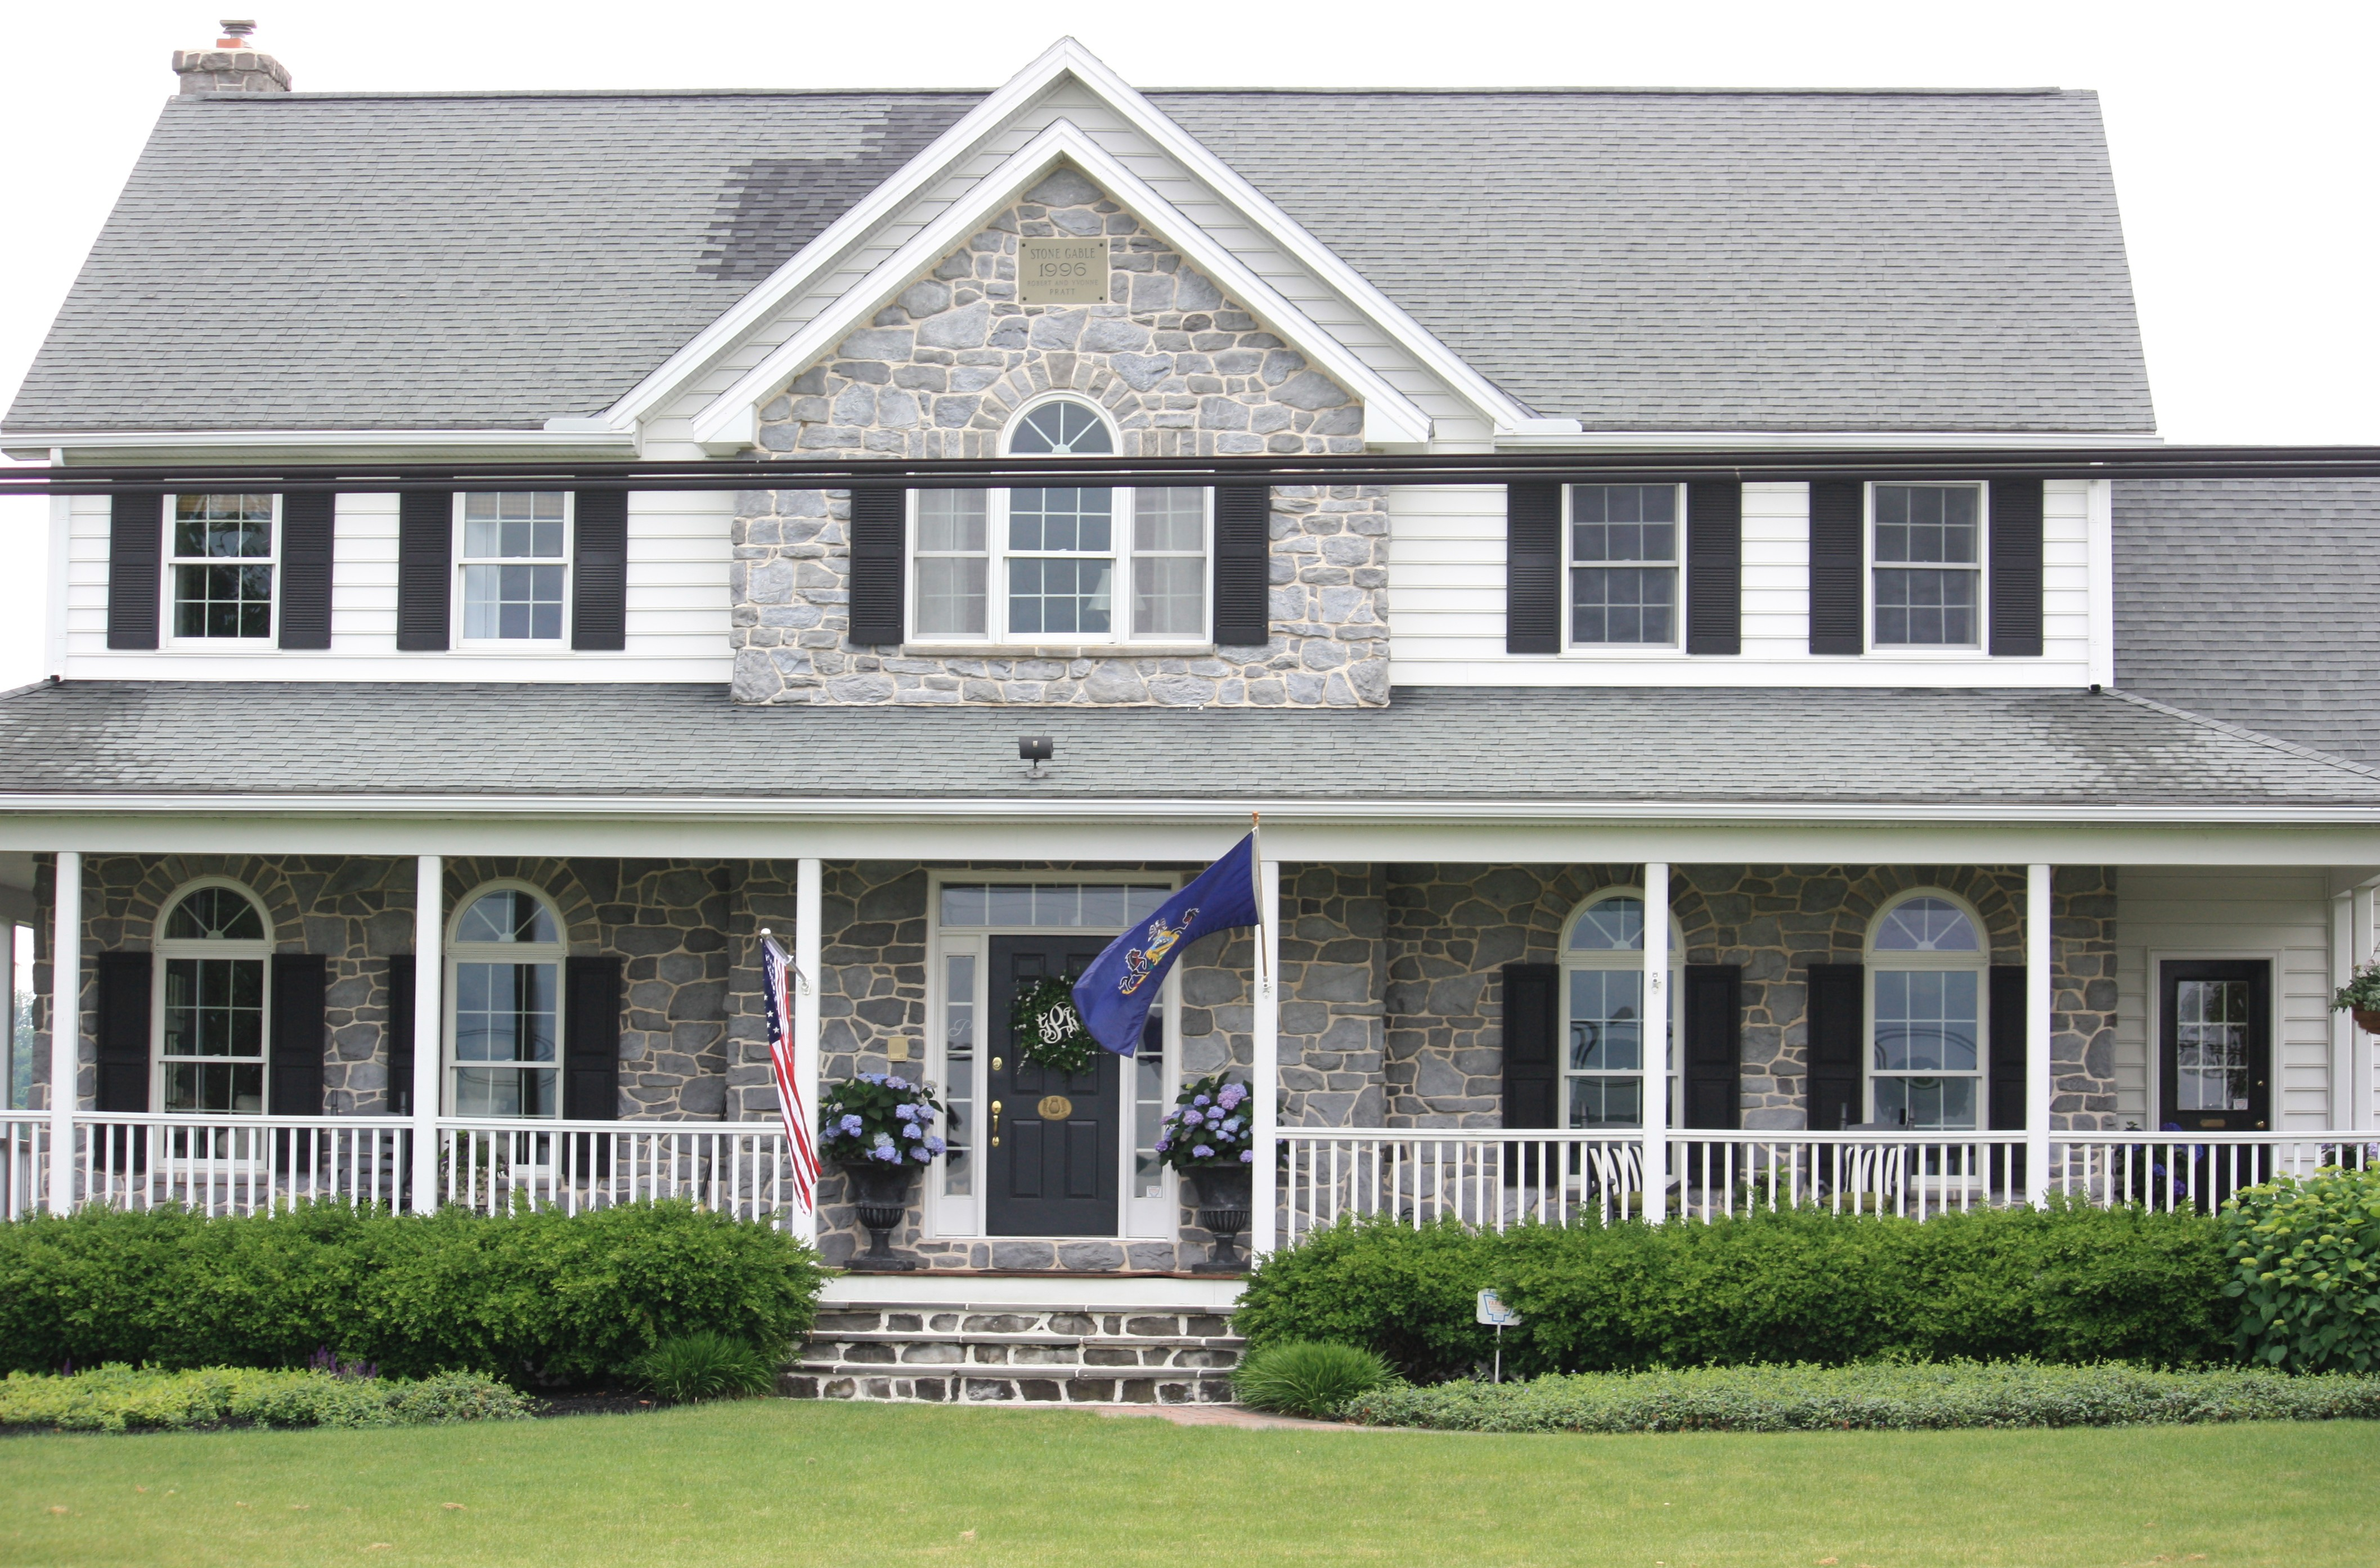 At the Picket Fence Parade of Homes ~ StoneGable